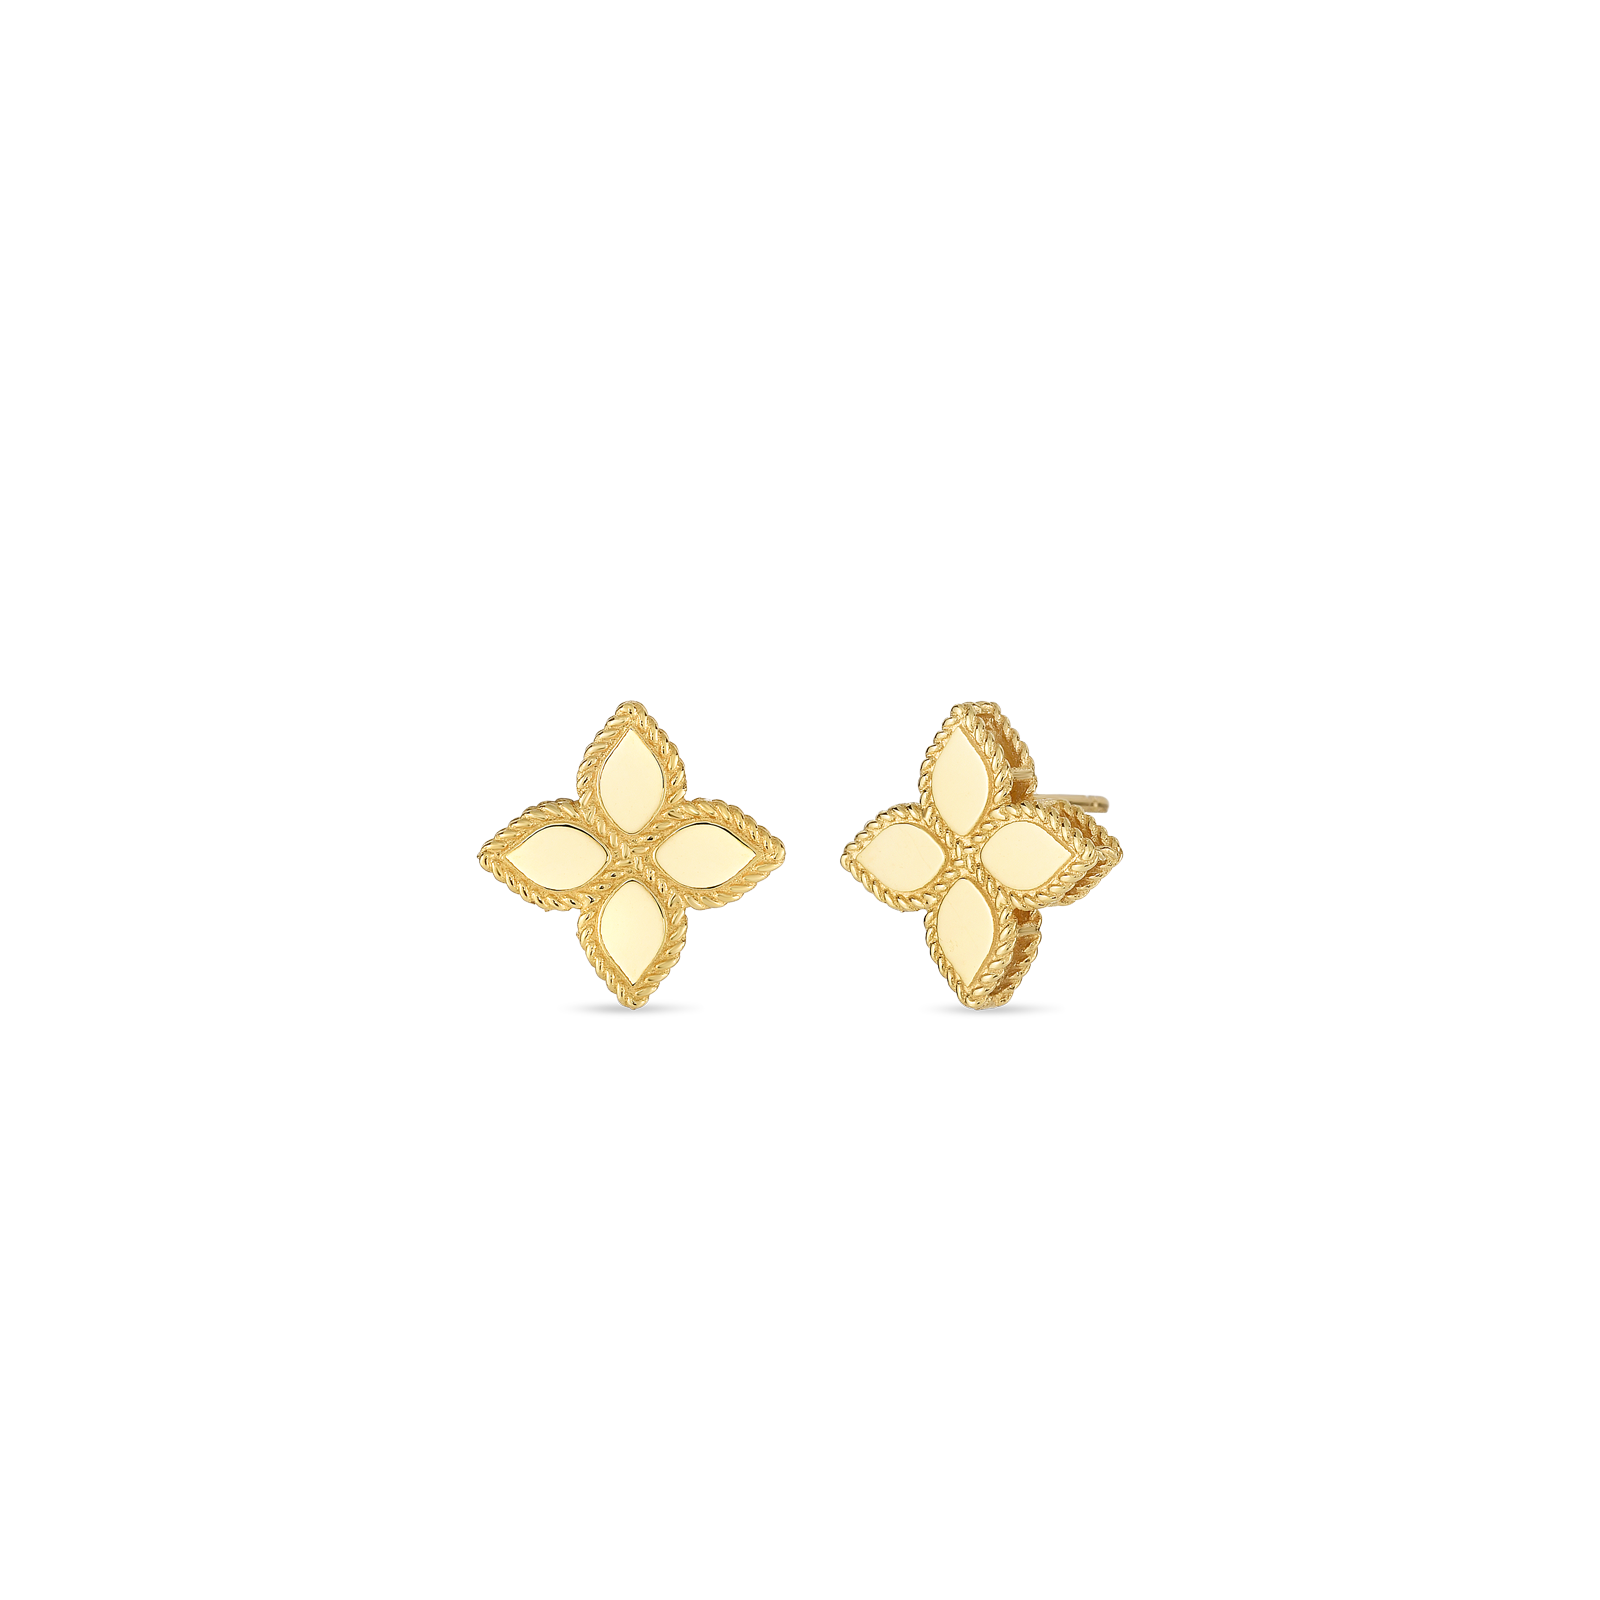 18K Yellow Gold Medium Stud Earrings